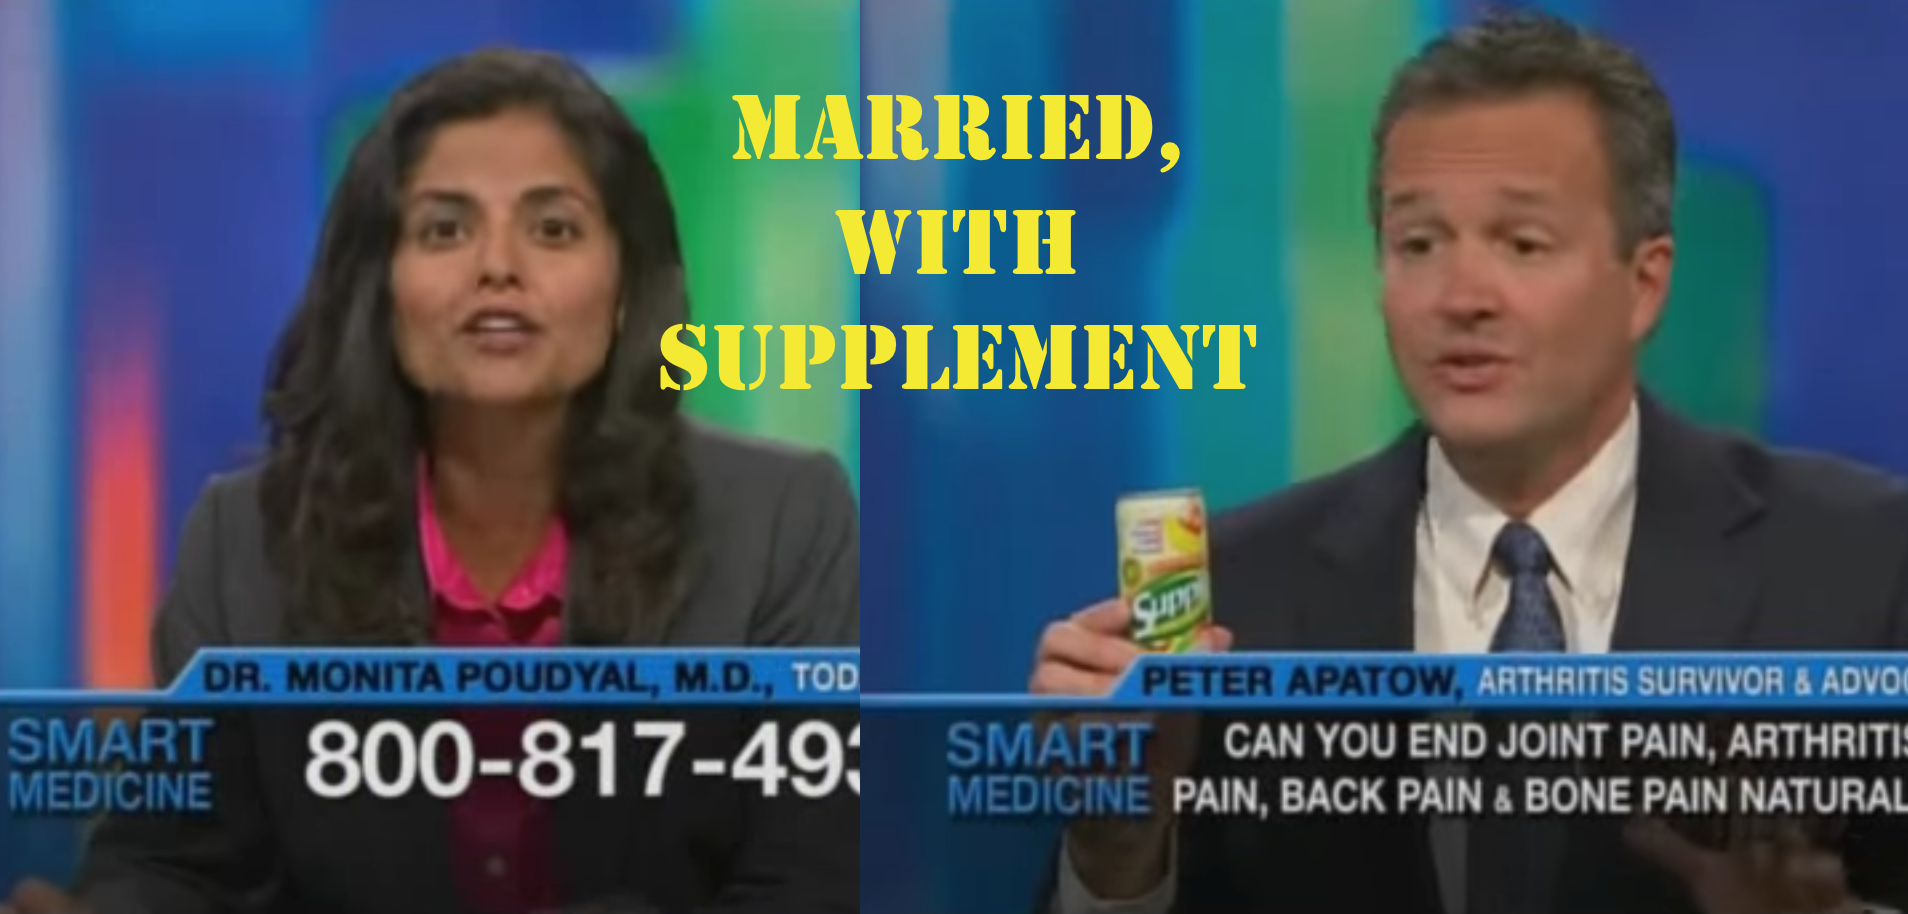 Doctor Who Endorsed Sketchy Joint Pain Supplement Failed To Mention She Was Married To Company's Owner